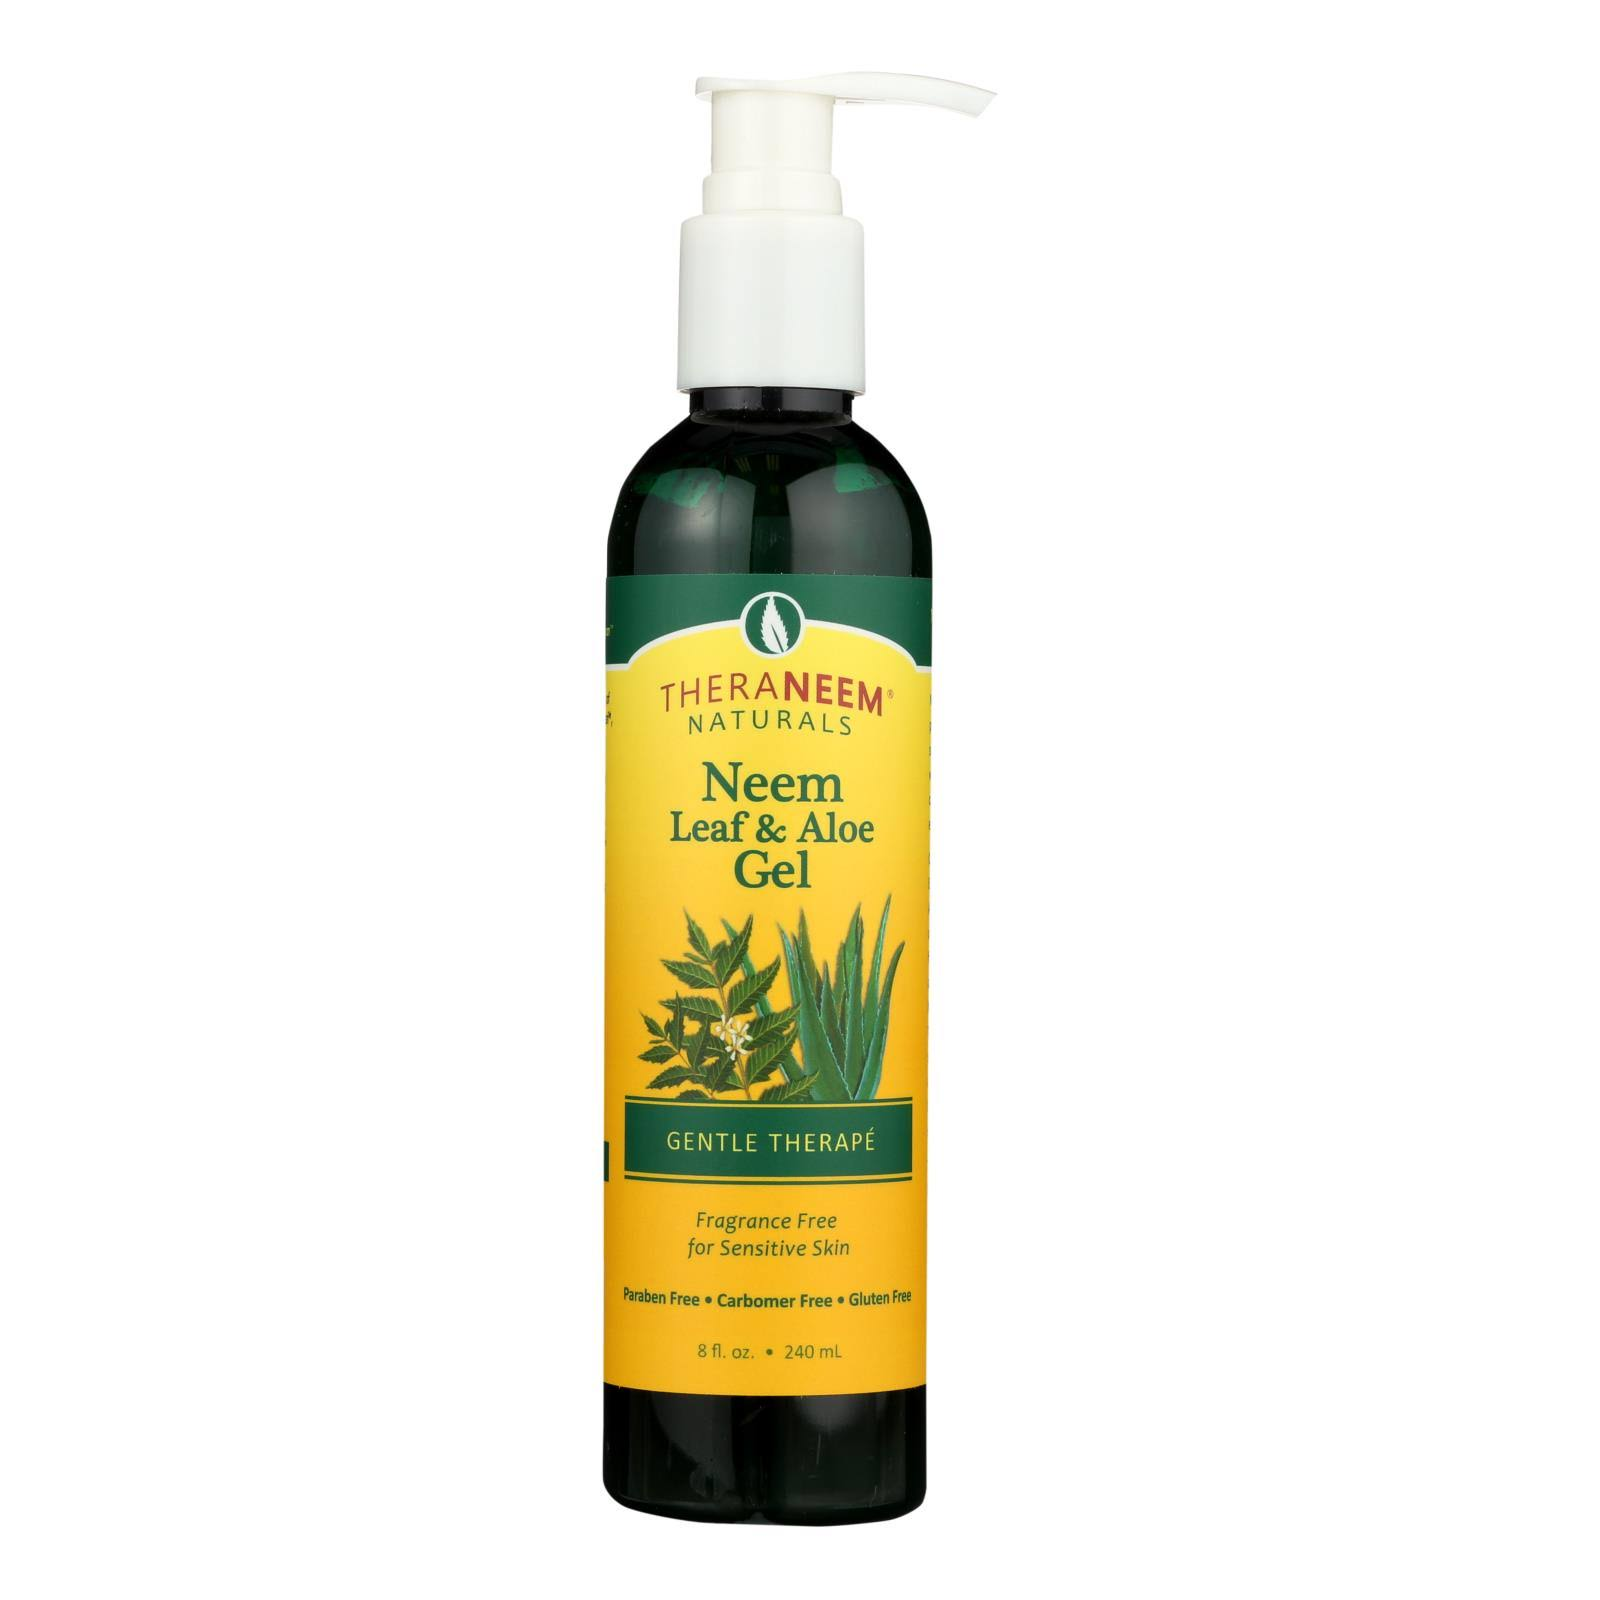 TheraNeem Organix Neem Leaf & Aloe Gel - 8 oz